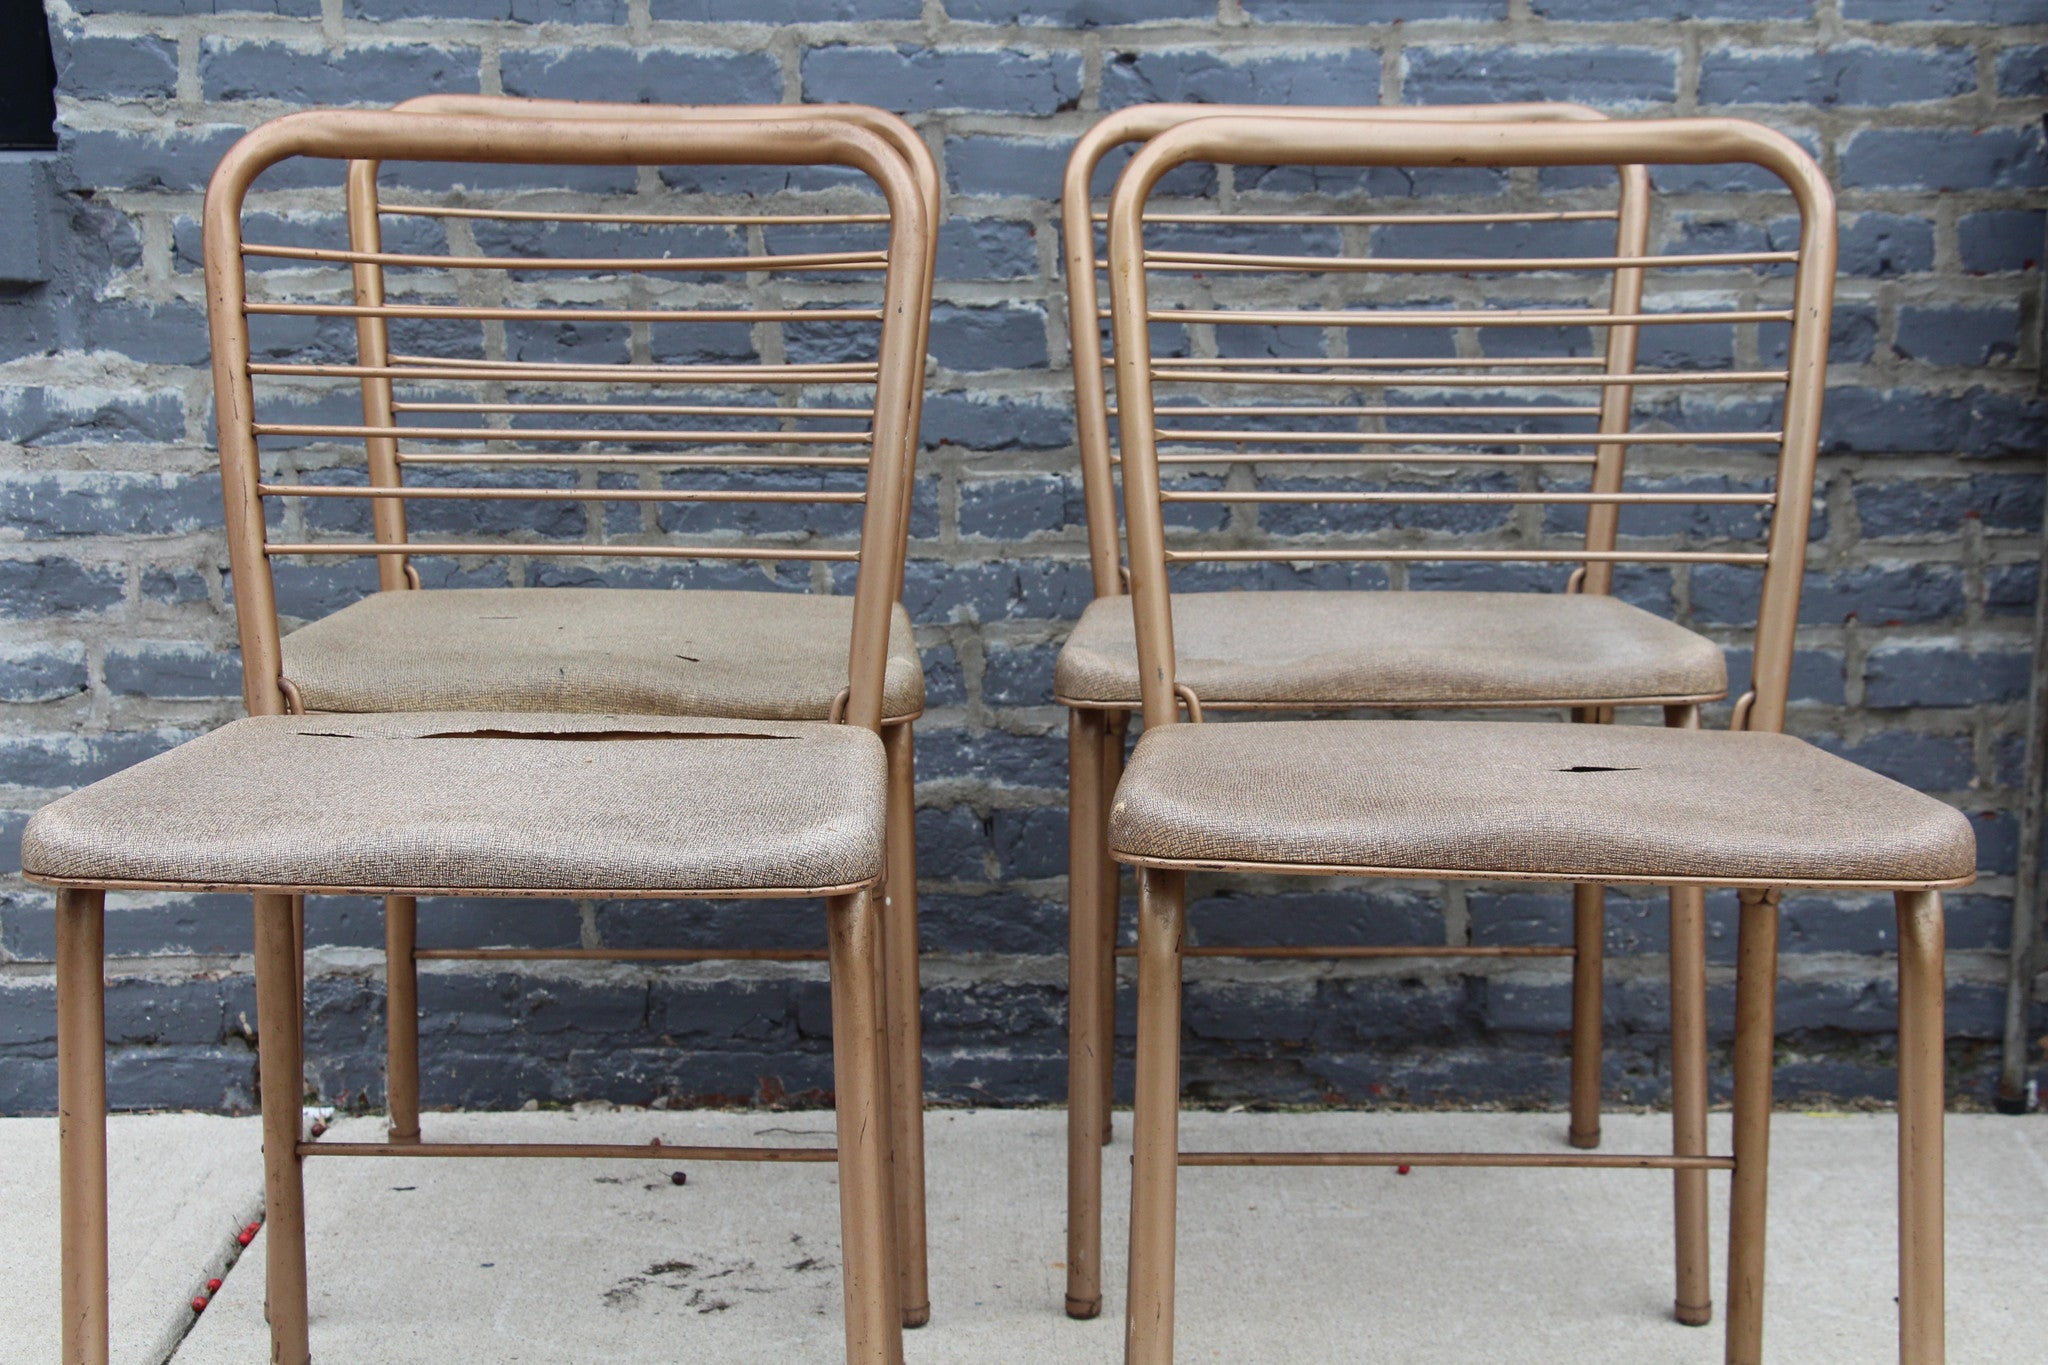 Vintage Metal Folding Chairs Set of 4 Barefoot Dwelling